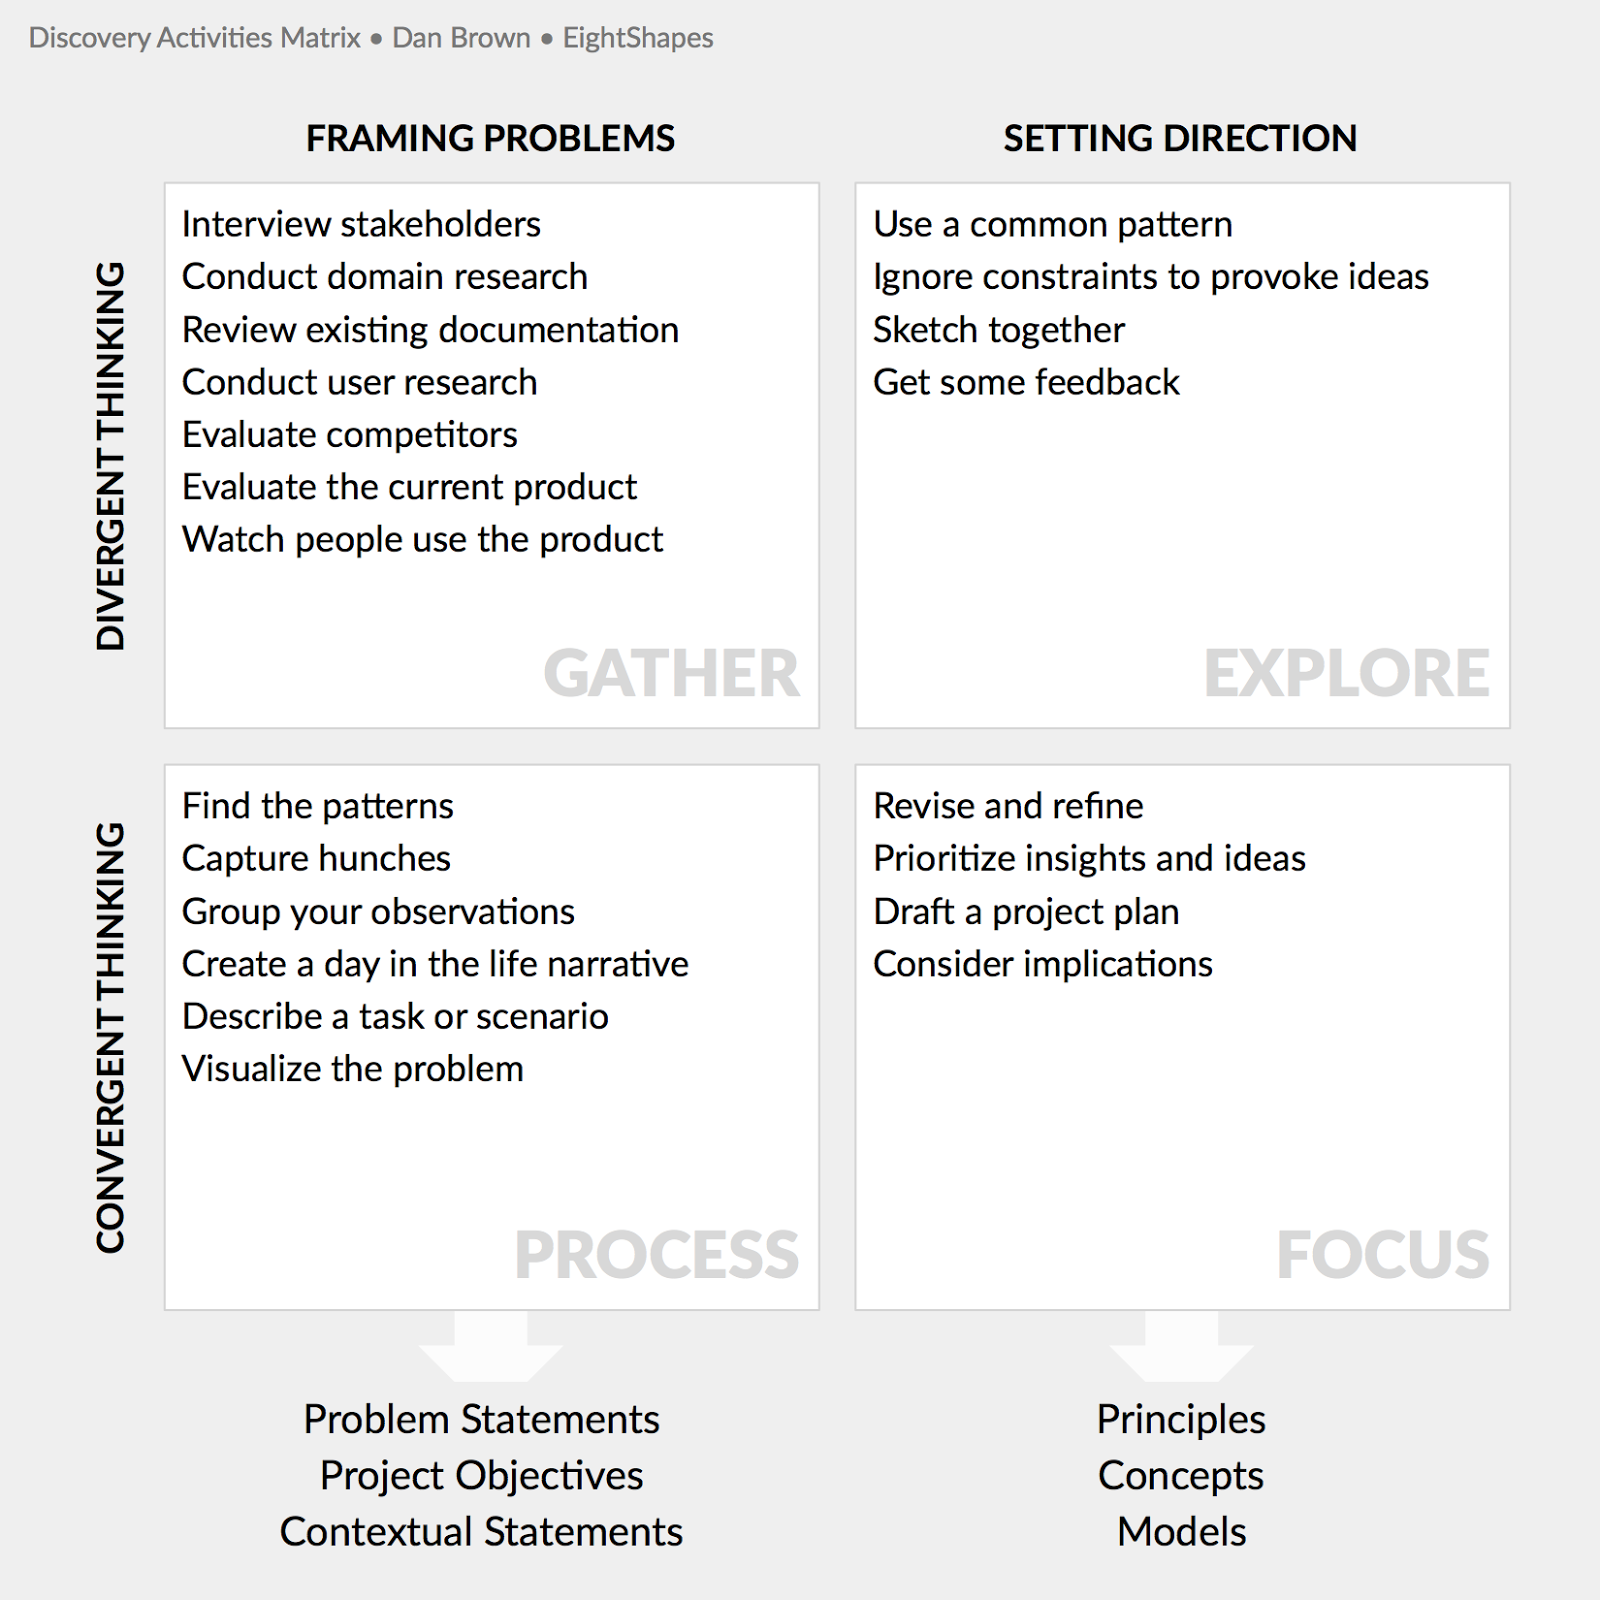 Dan Brown's Discovery Activities Matrix